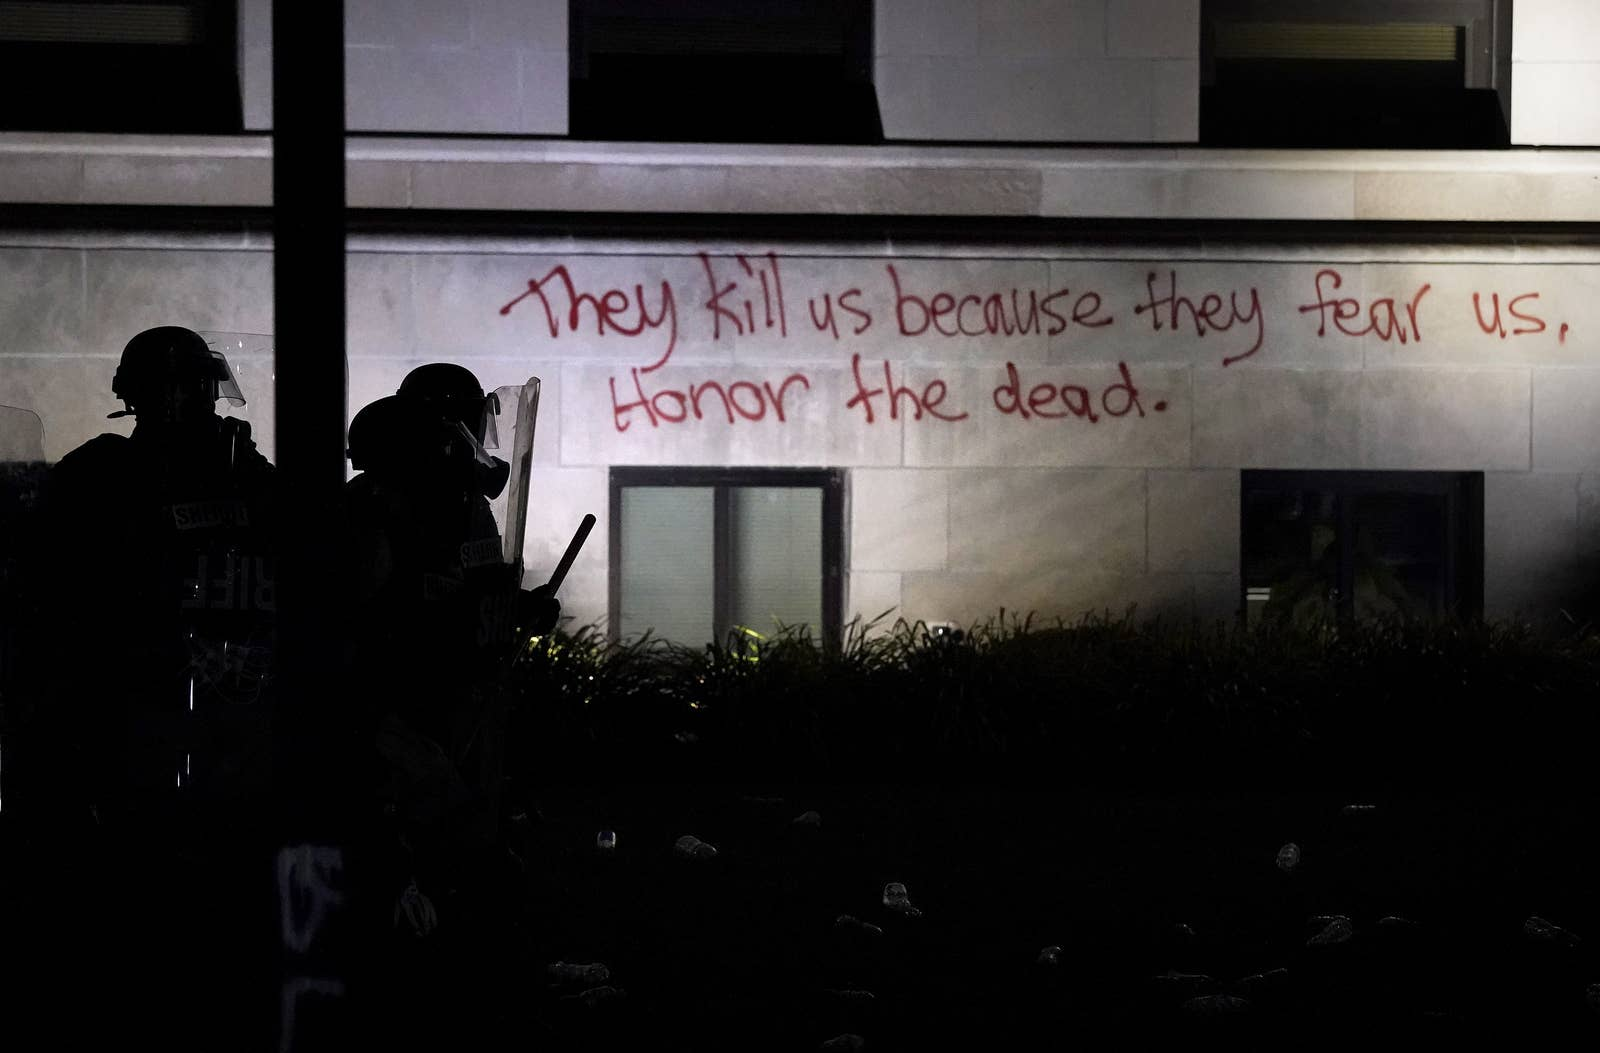 """Spraypaint on the outside wall of the courthouse reads, """"They kill us because they fear us. Honor the dead."""""""